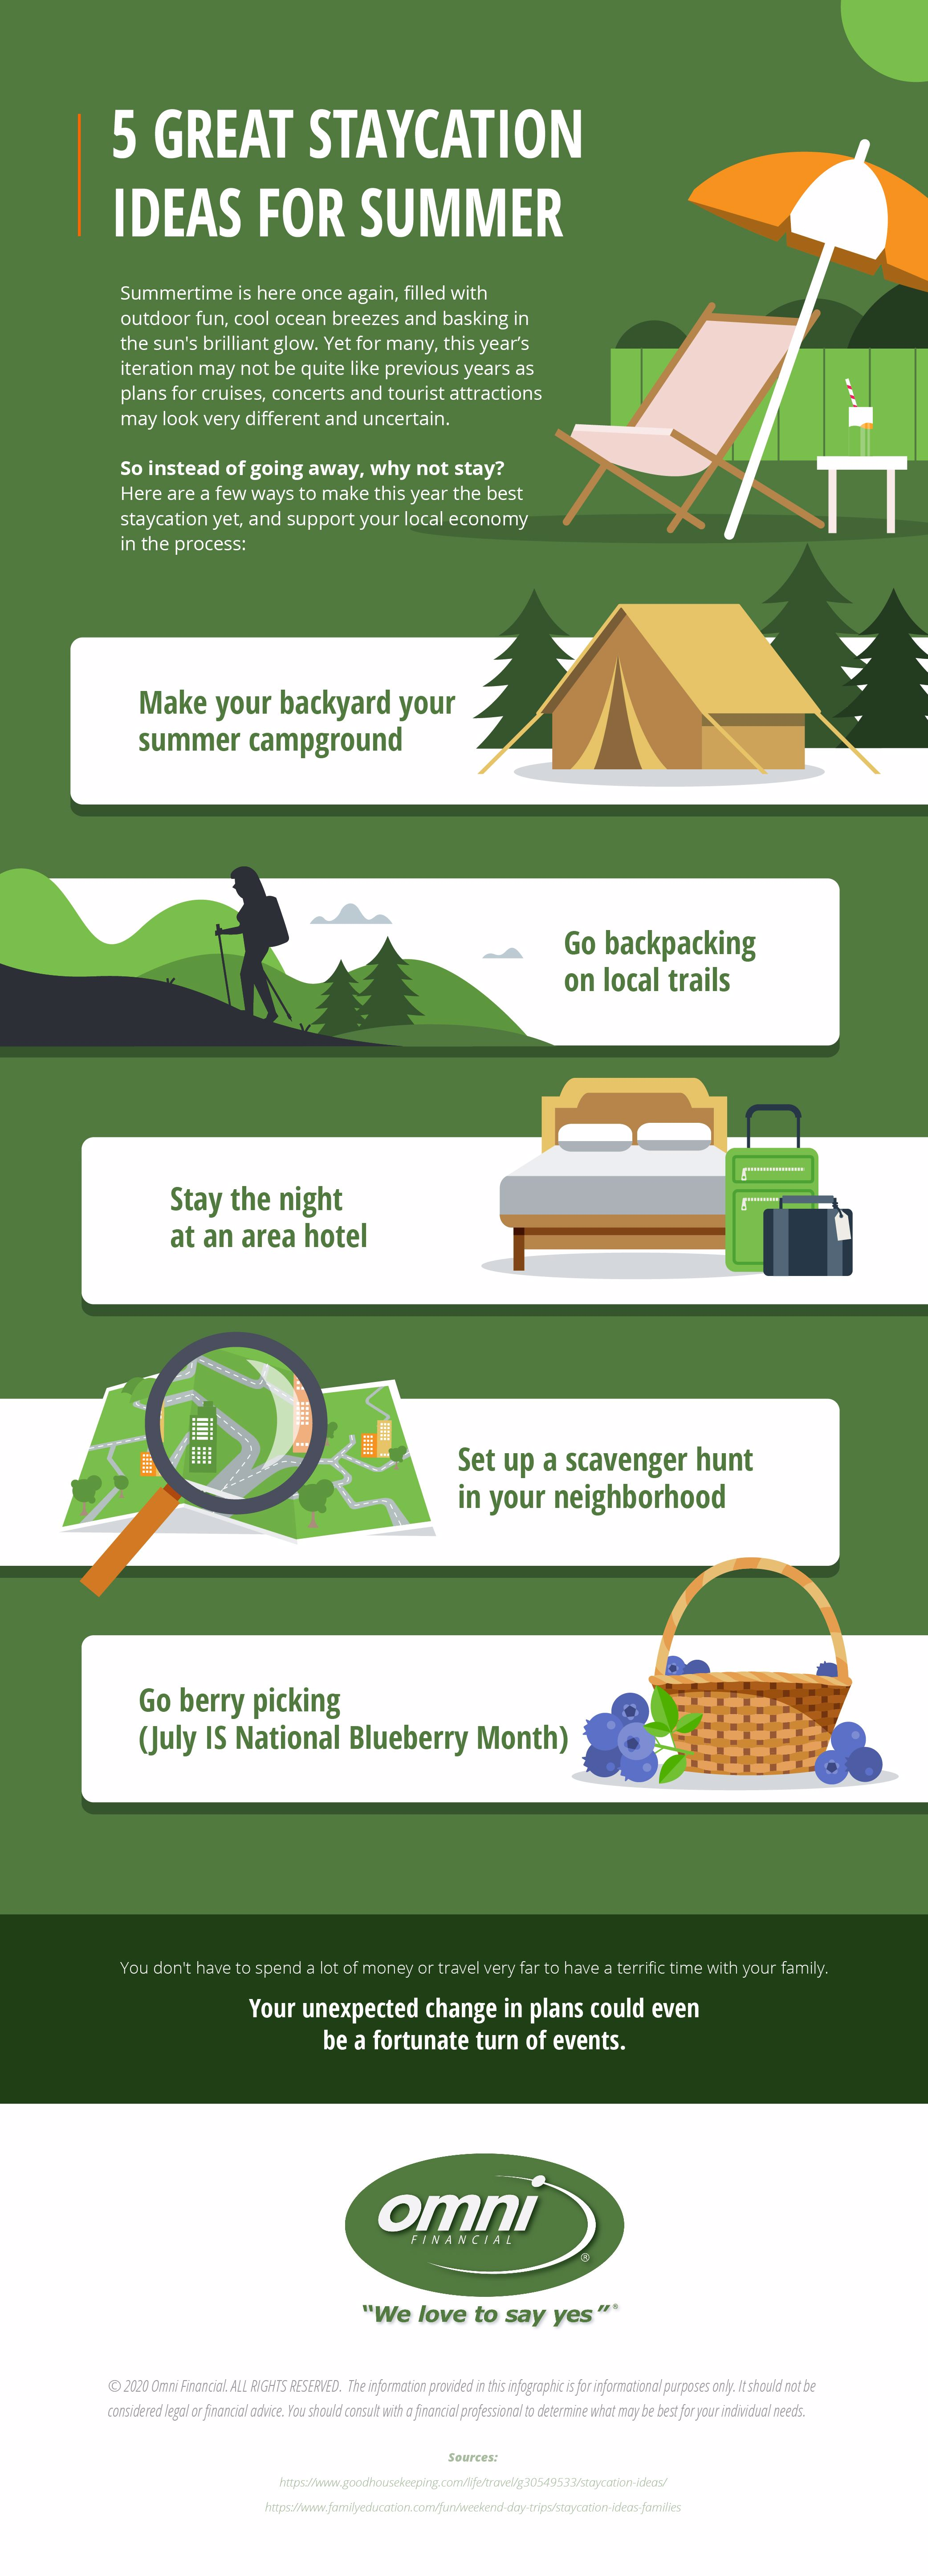 Omni Financial infographic outlining staycation ideas for summer vacation that support the local economy